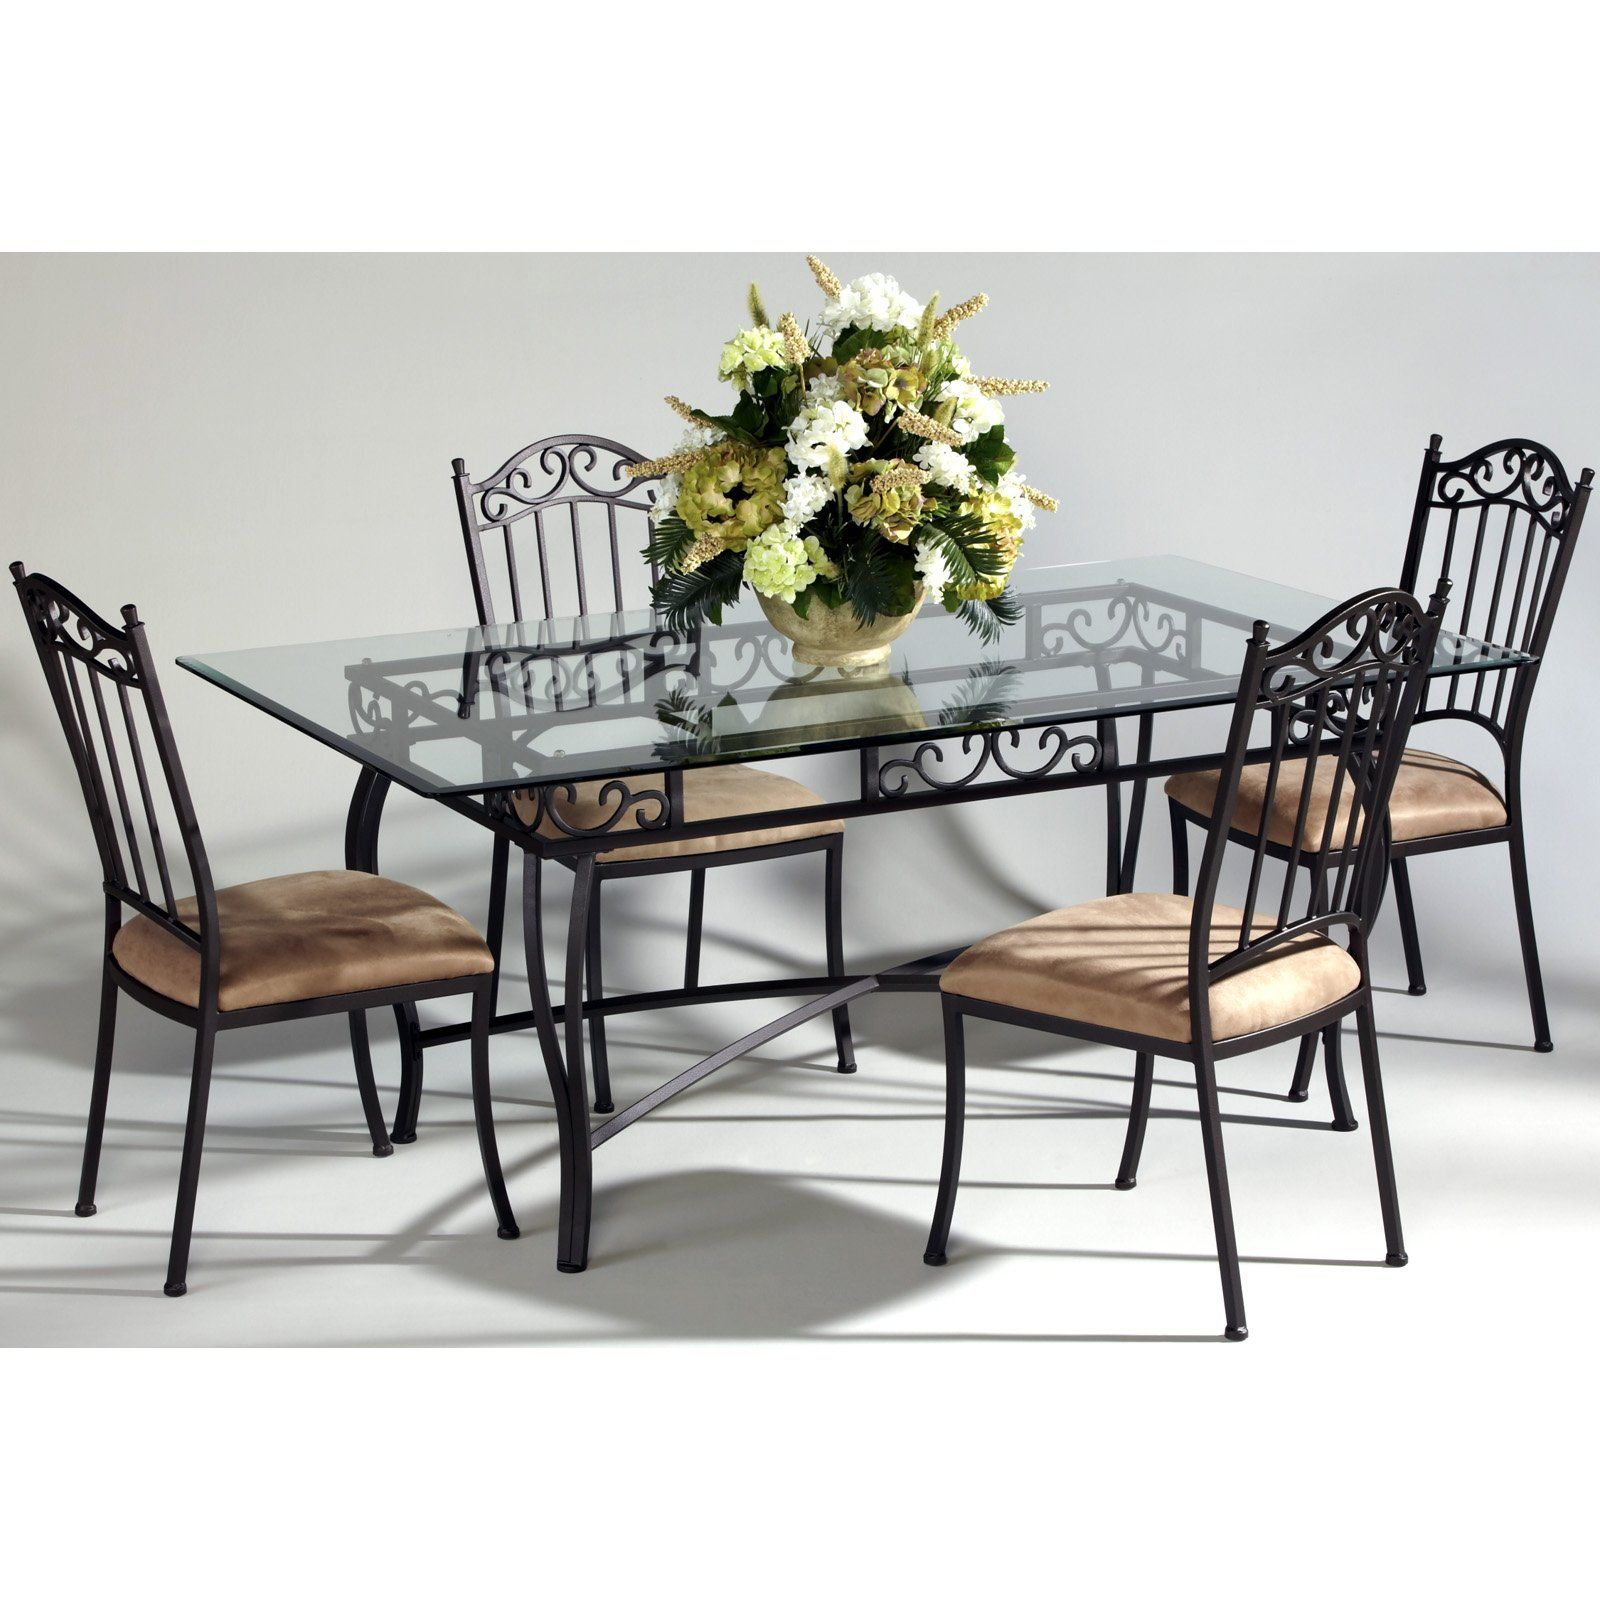 wrought iron kitchen chairs Chintaly Bethel 5 Piece Rectangular Wrought Iron Dining Table Set 32